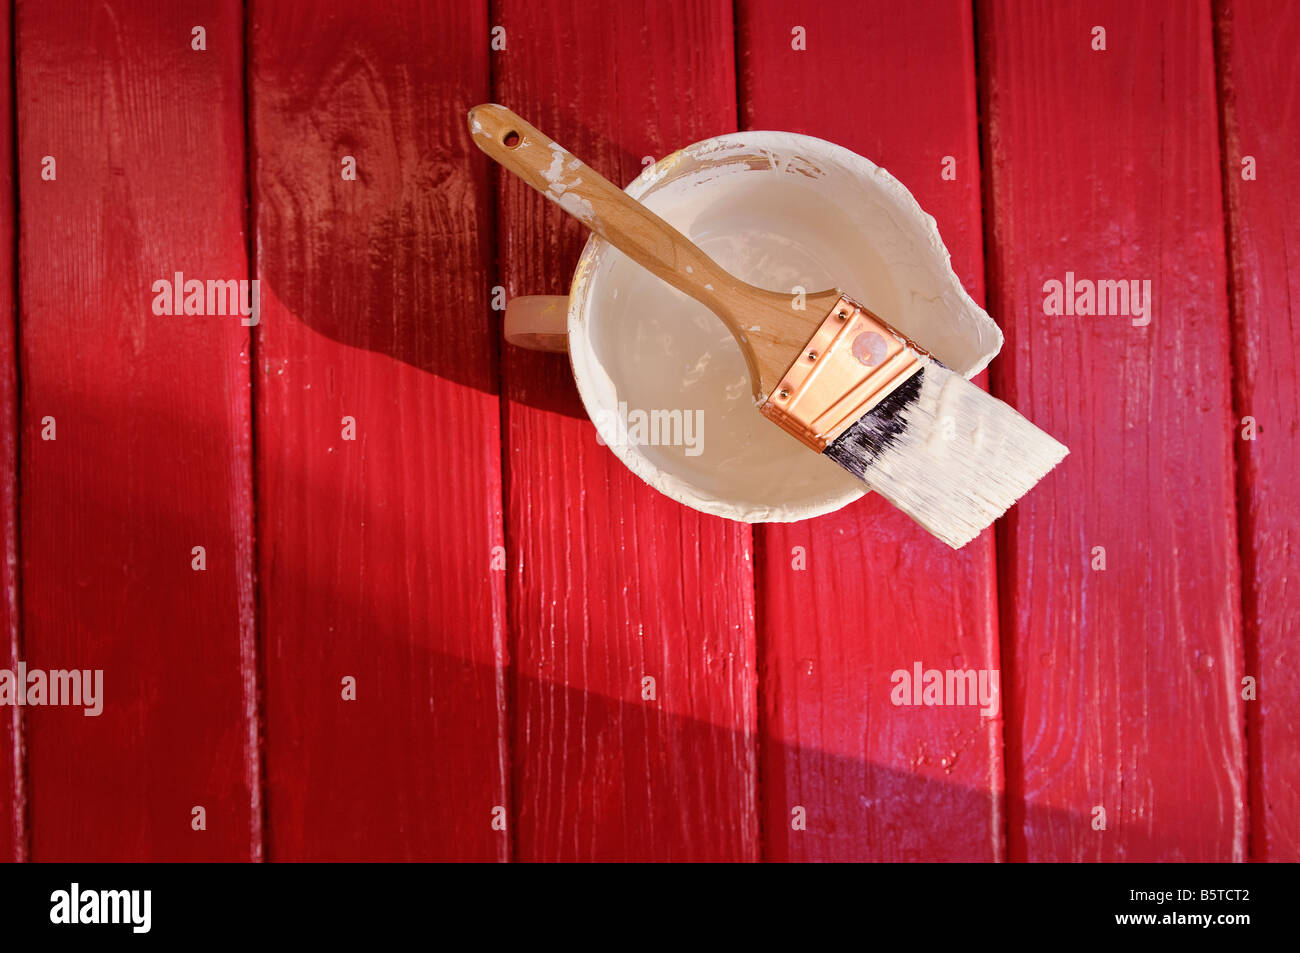 Paint brush, pail and white paint on freshly painted red floor - Stock Image